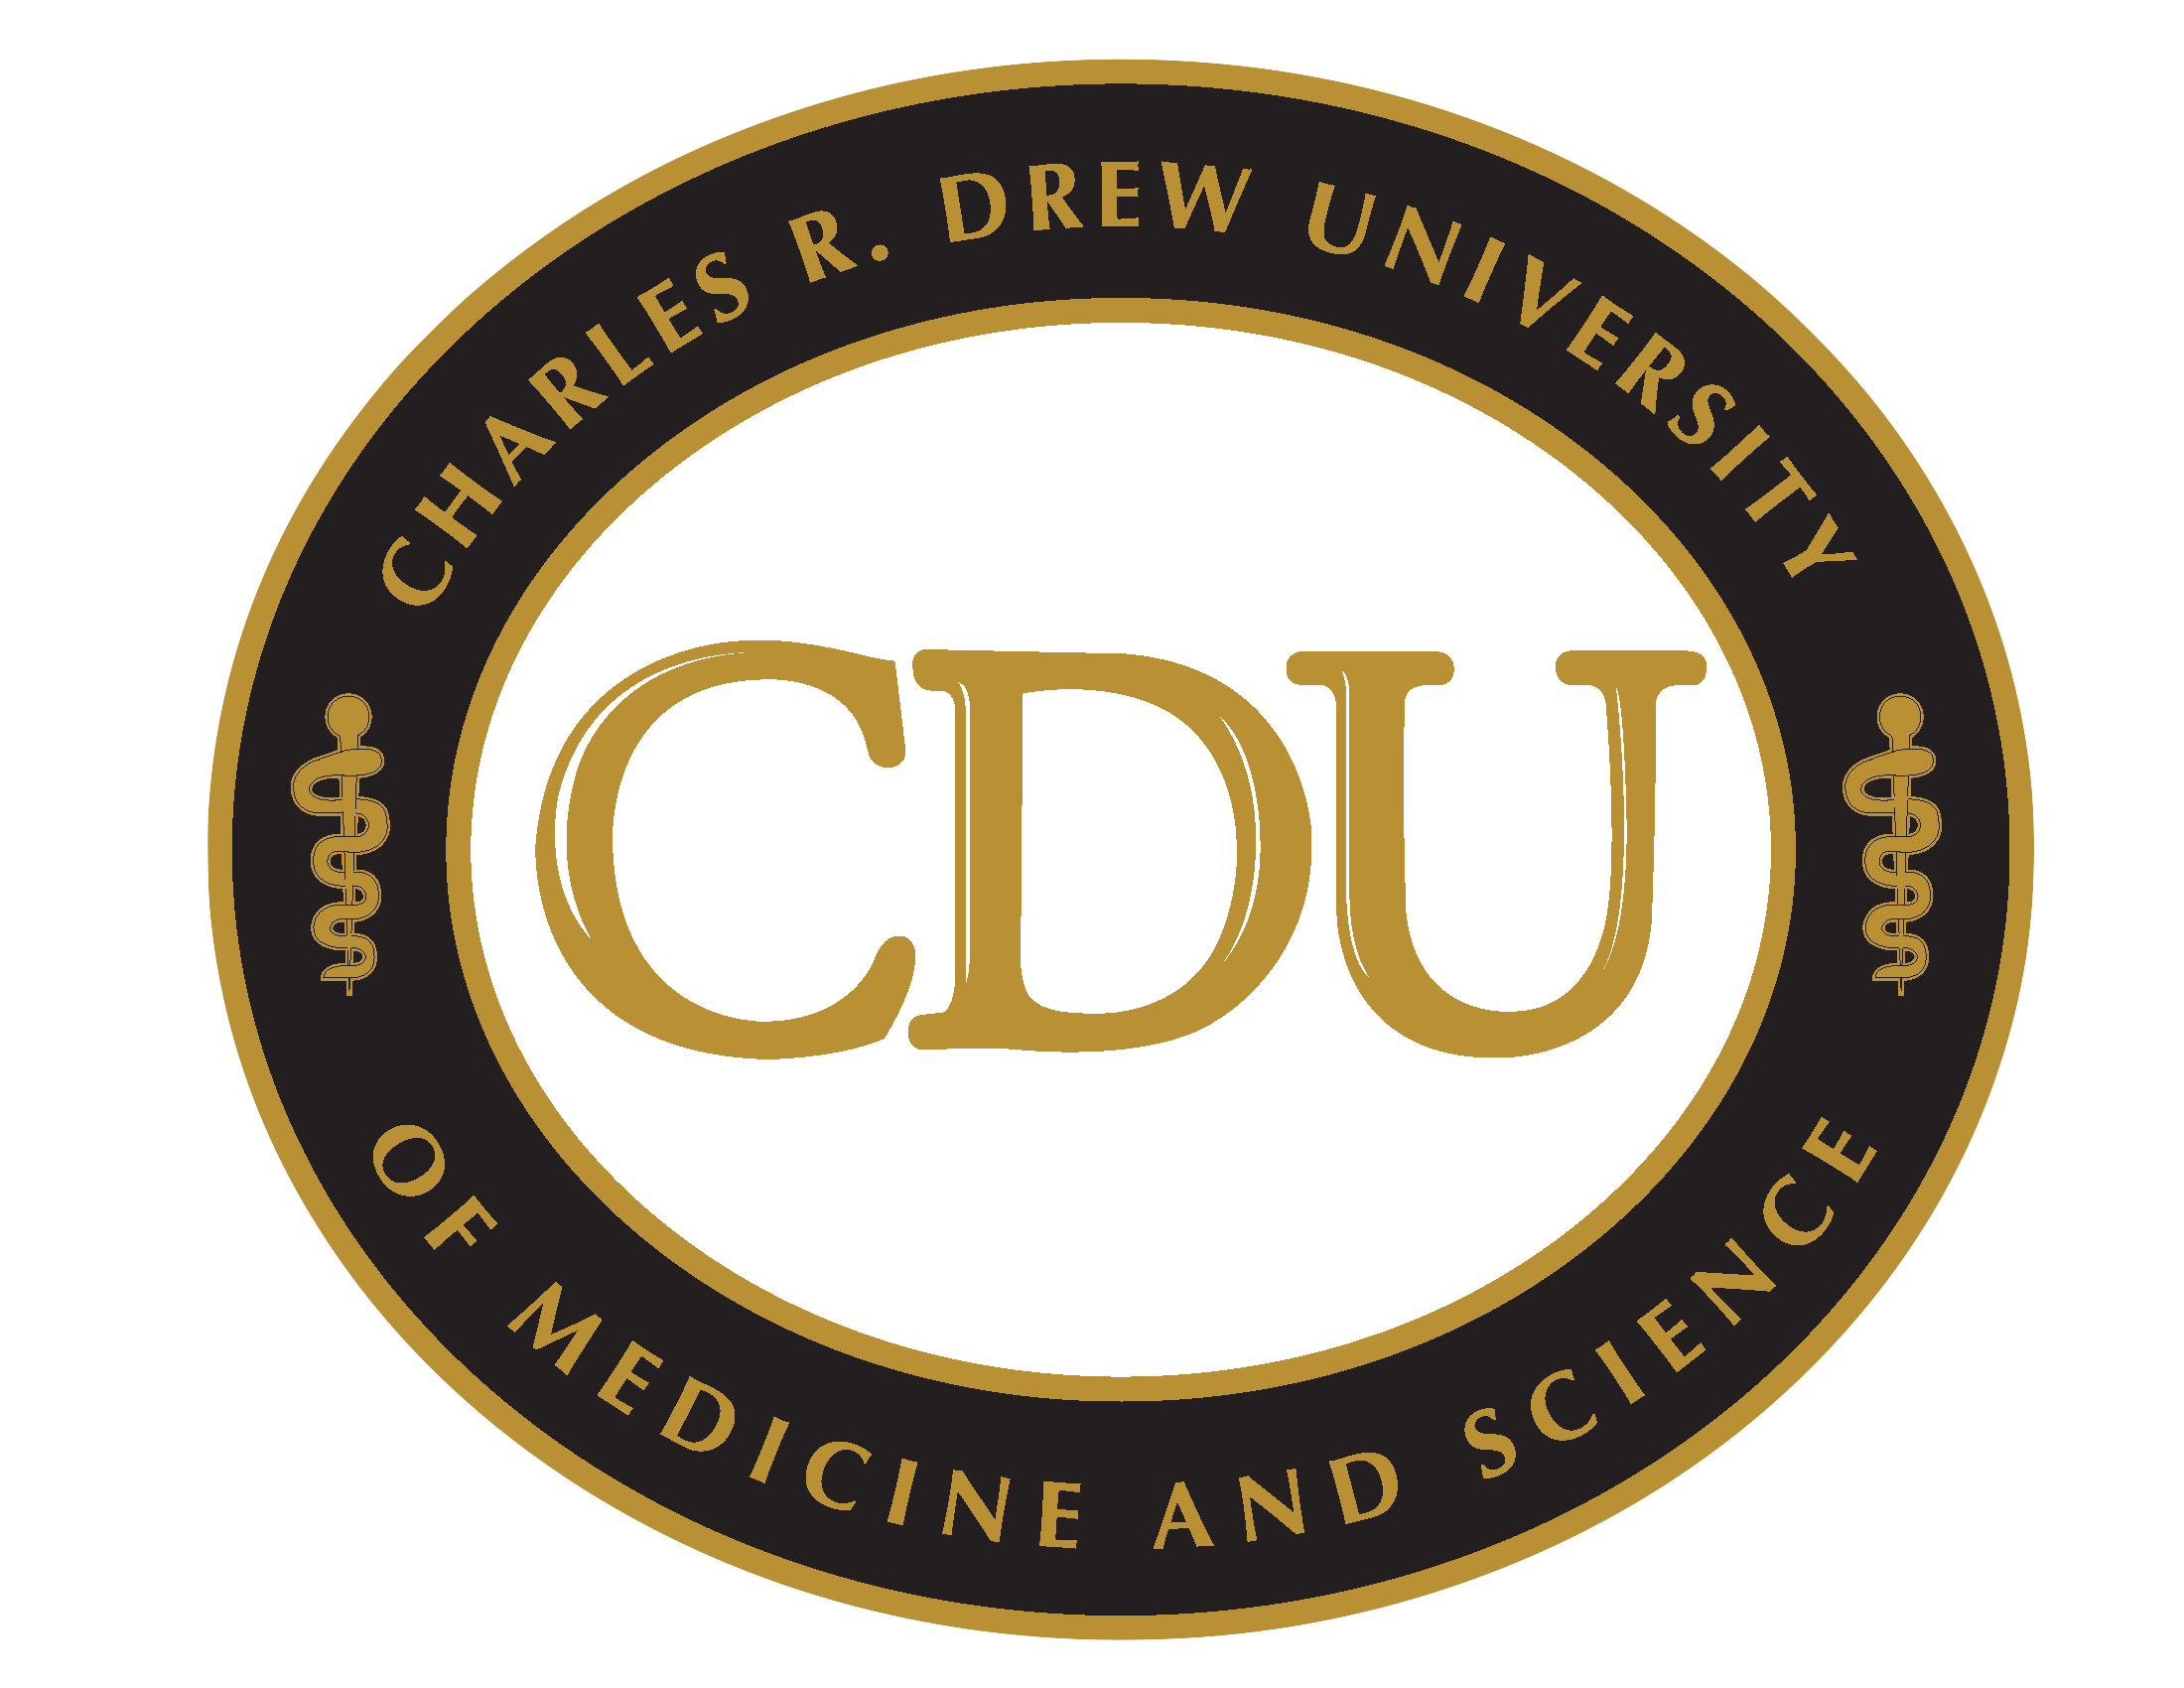 Charles R. Drew University of Medicine and Science Physician Assistant Program